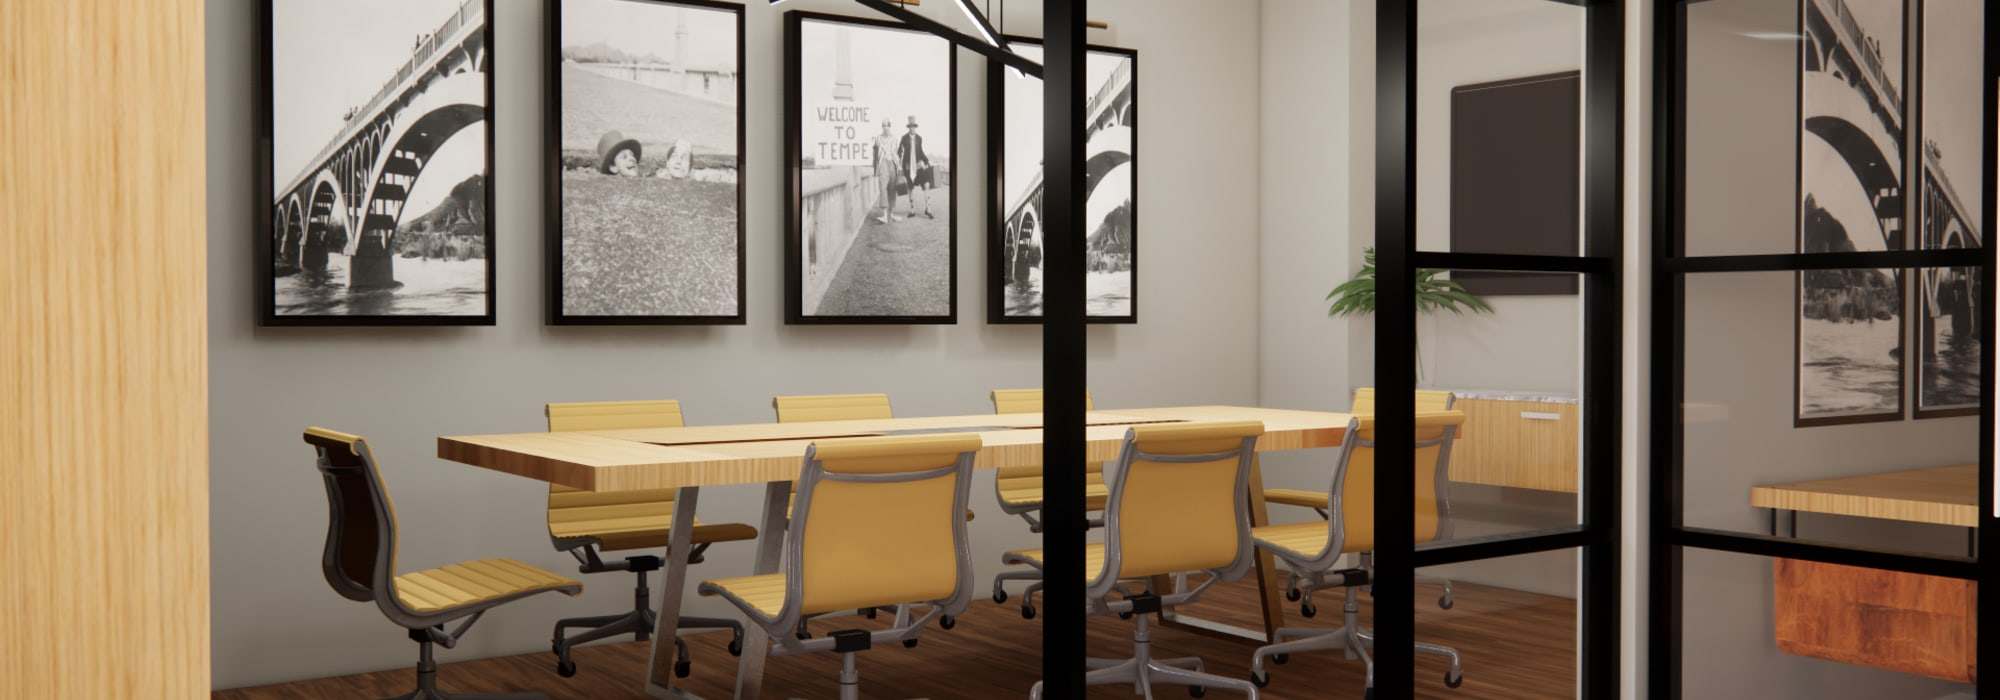 Rendering of conference room for residents to use at The Piedmont in Tempe, Arizona